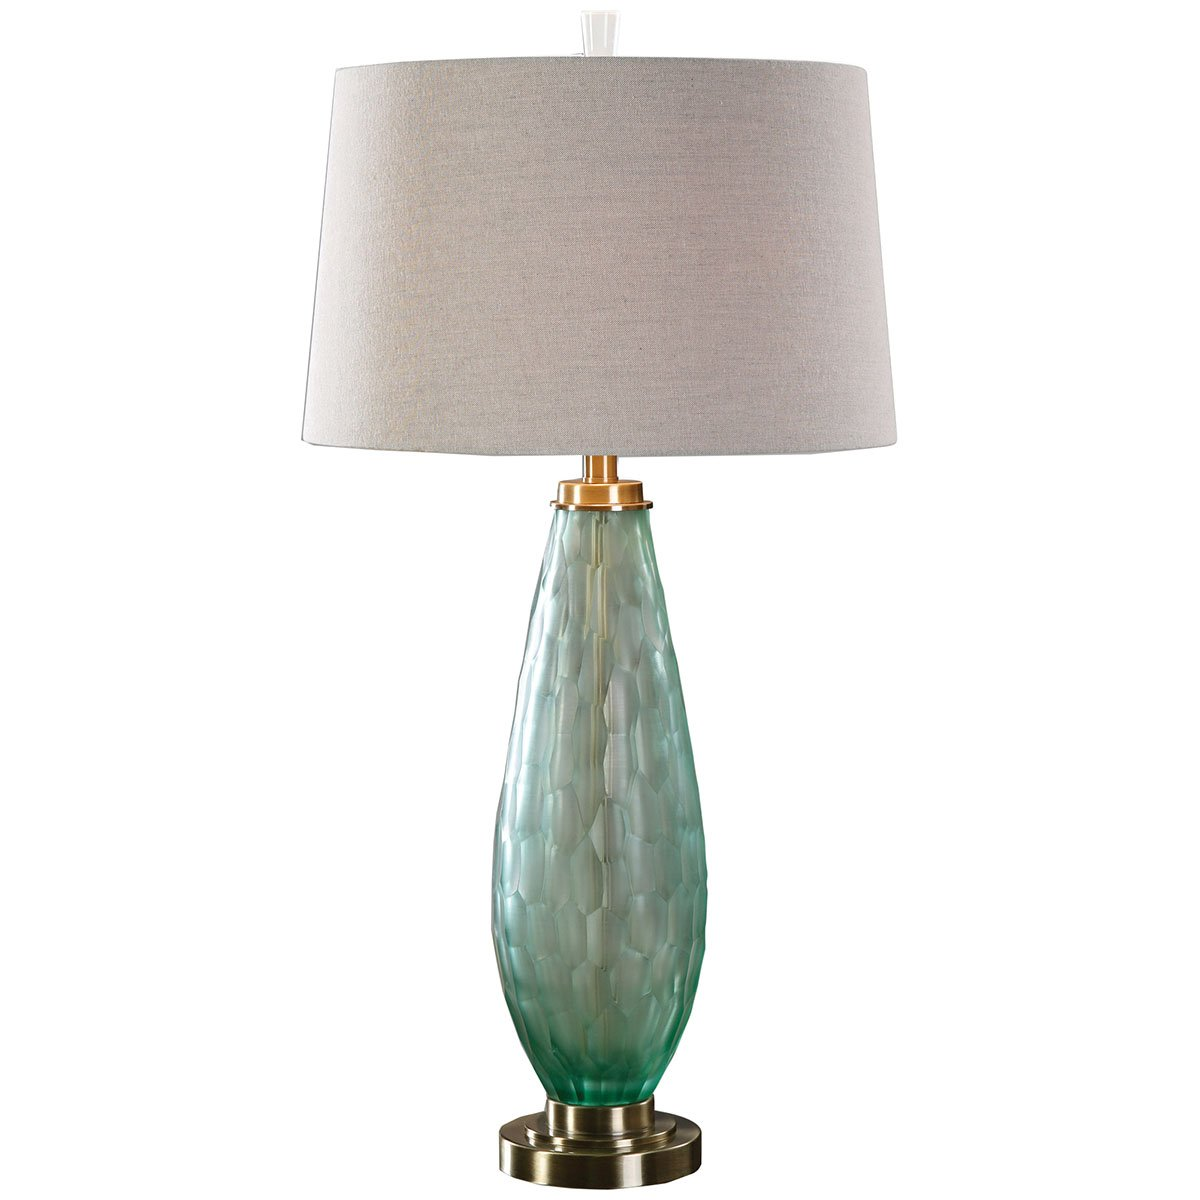 Amazon.com: Uttermost 27003 Lenado Glass Table Lamp, Sea Green ...